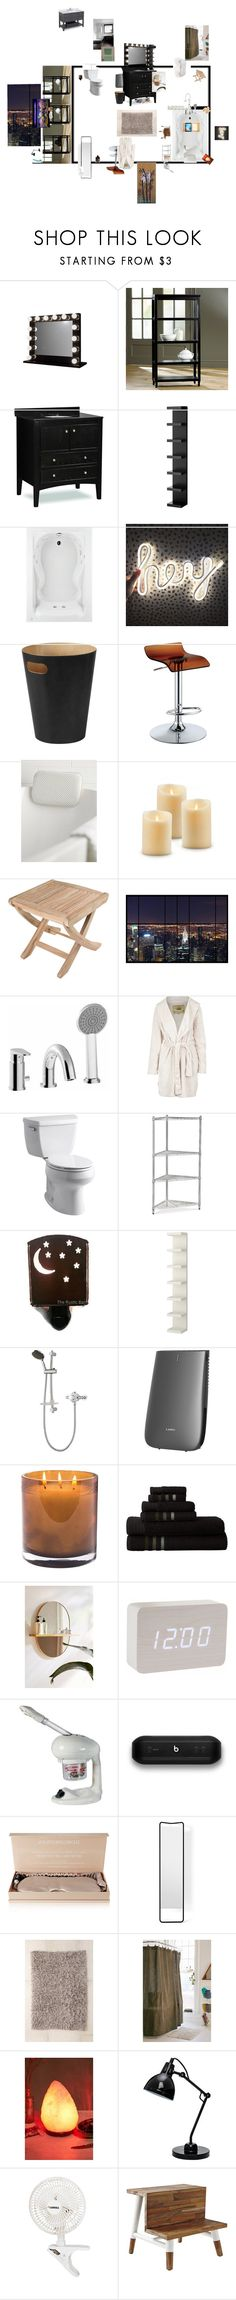 """""""Untitled #90"""" by xteenxidlex ❤ liked on Polyvore featuring Ballard Designs, American Standard, Umbra, Furniture of America, Simons Maison, CO, WS Bath Collections, UGG Australia, Kohler and Improvements"""